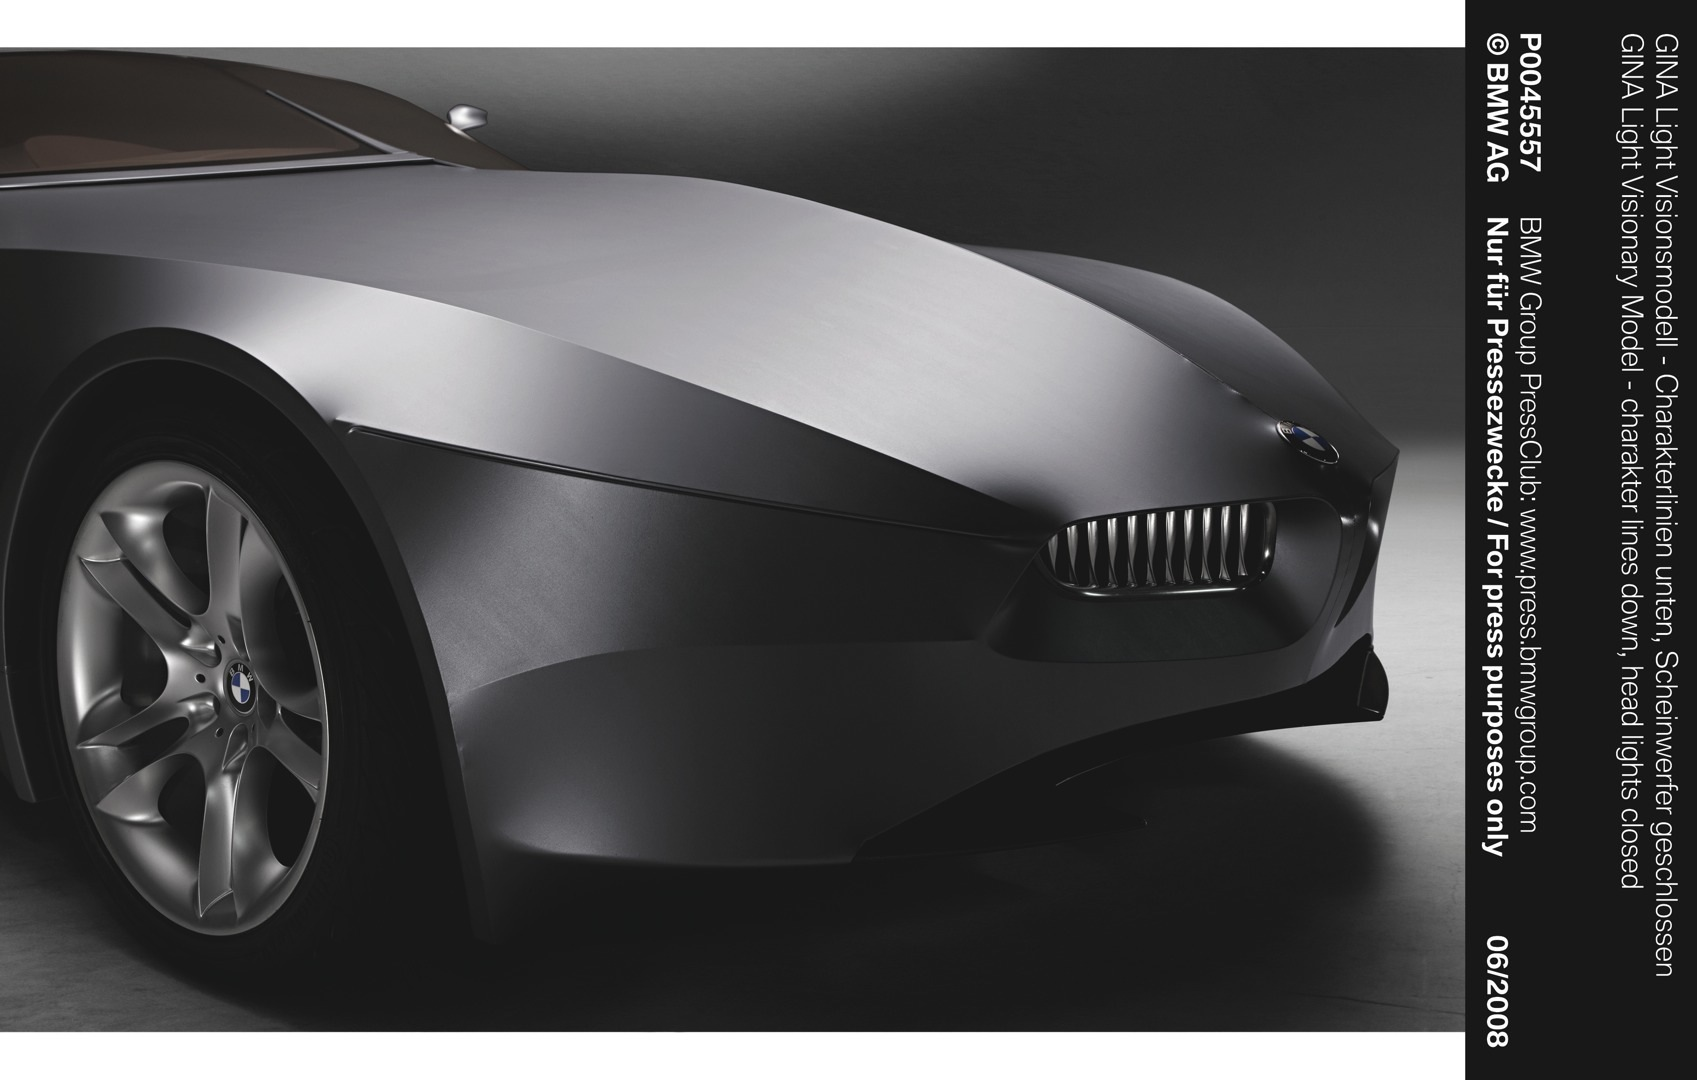 Bmw Gina Light Visionary Model Concept (50 Images) - HD Car Wallpaper